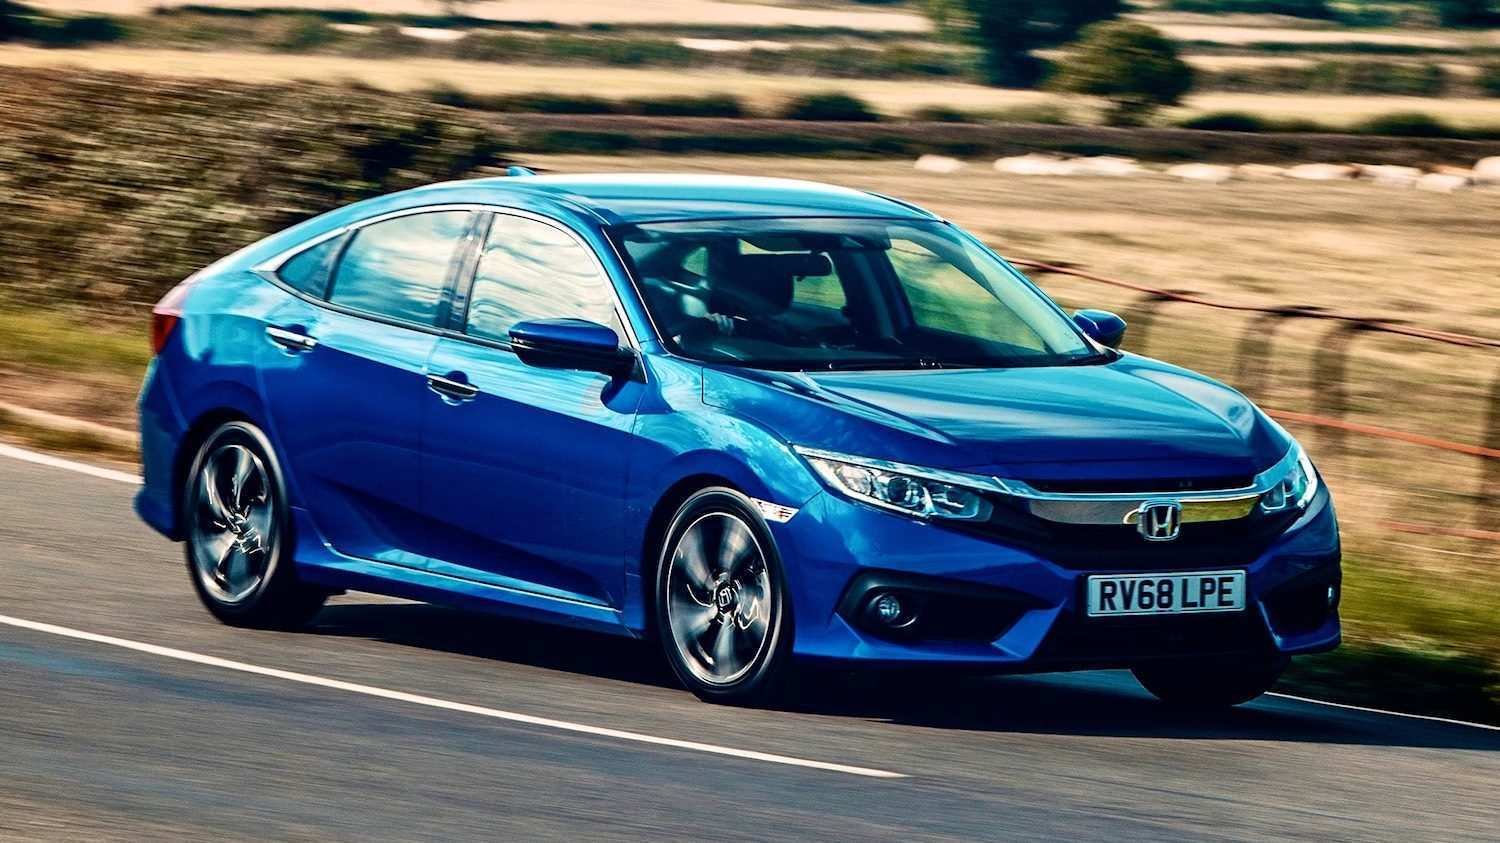 94 The New 2019 Honda Civic Hatchback Specs And Review Prices for New 2019 Honda Civic Hatchback Specs And Review